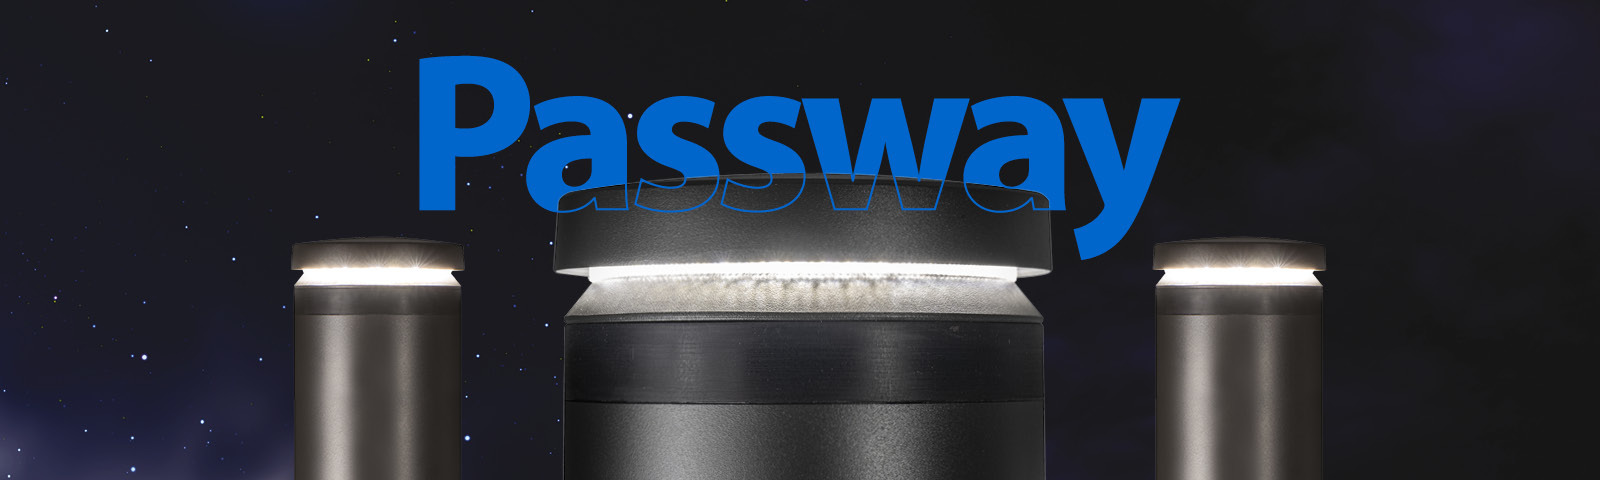 Passway - A Feature Packed State of the Art Lighting Bollard gallery image